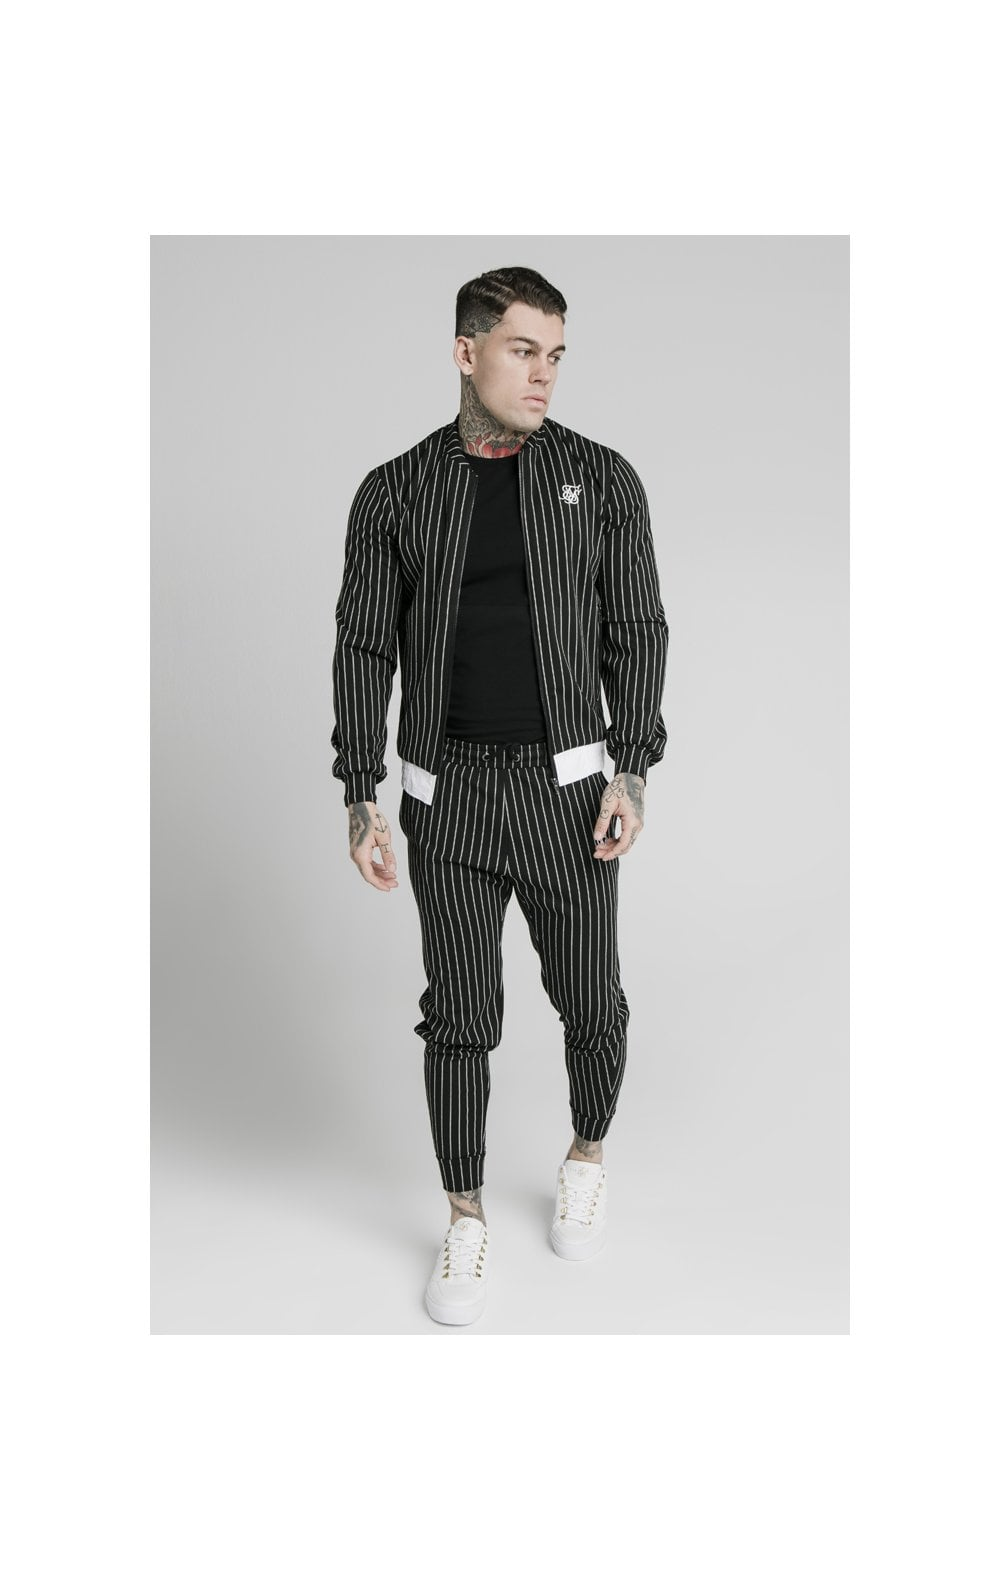 SikSilk Pinstripe Cuff Pants - Black & White (1)